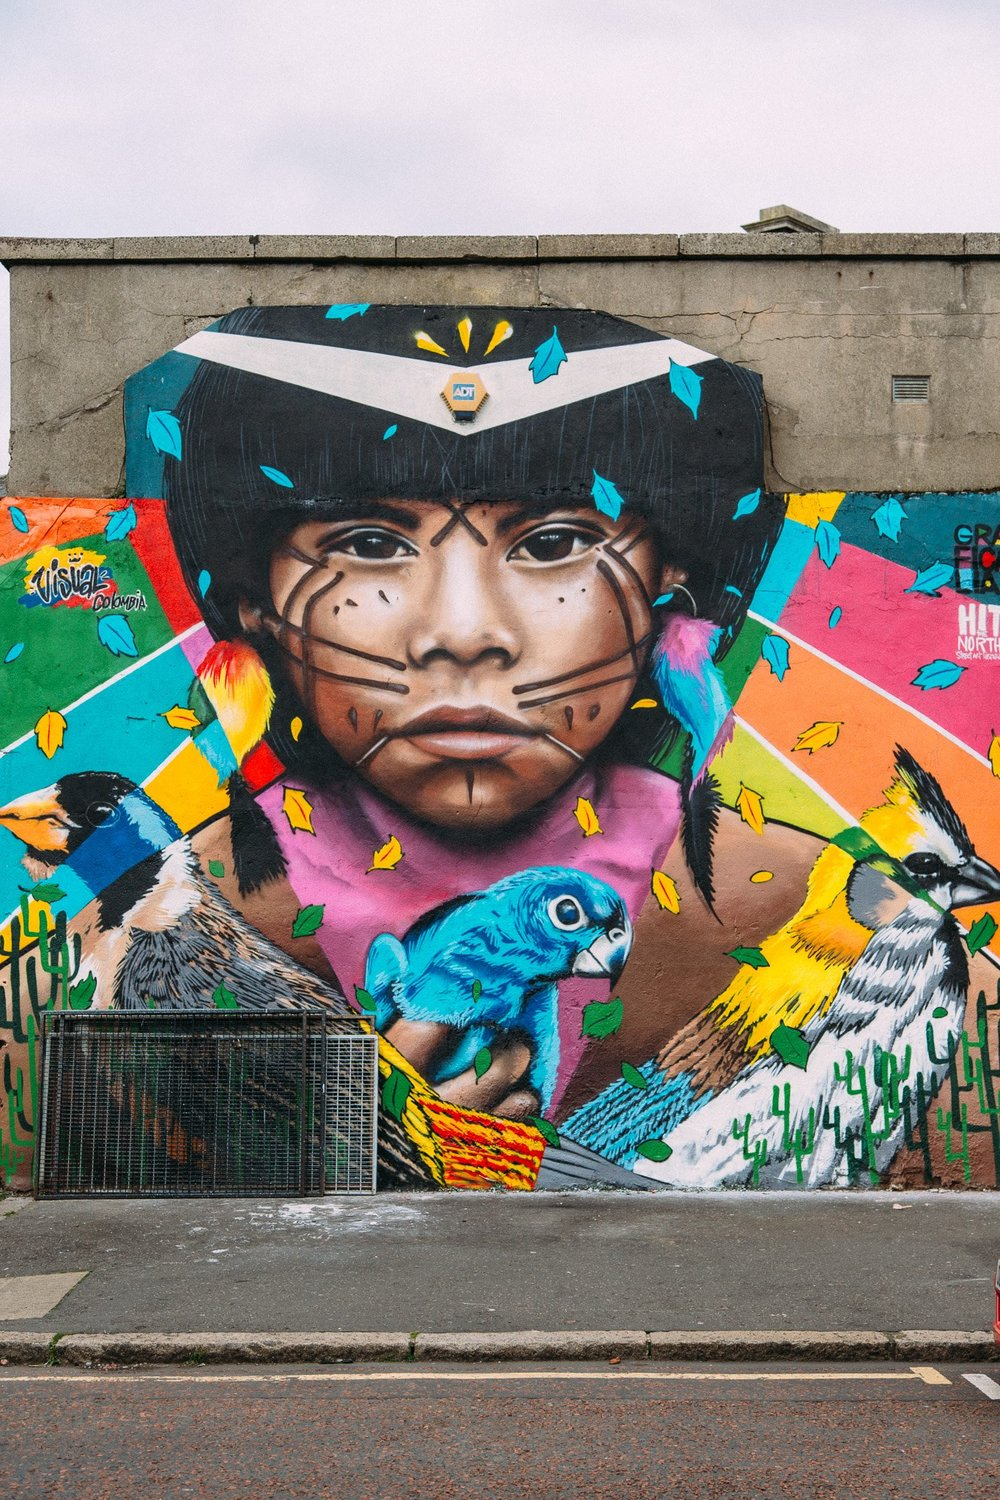 Hit the North Street Art Festival, Photo Courtesy of Neal Campbell